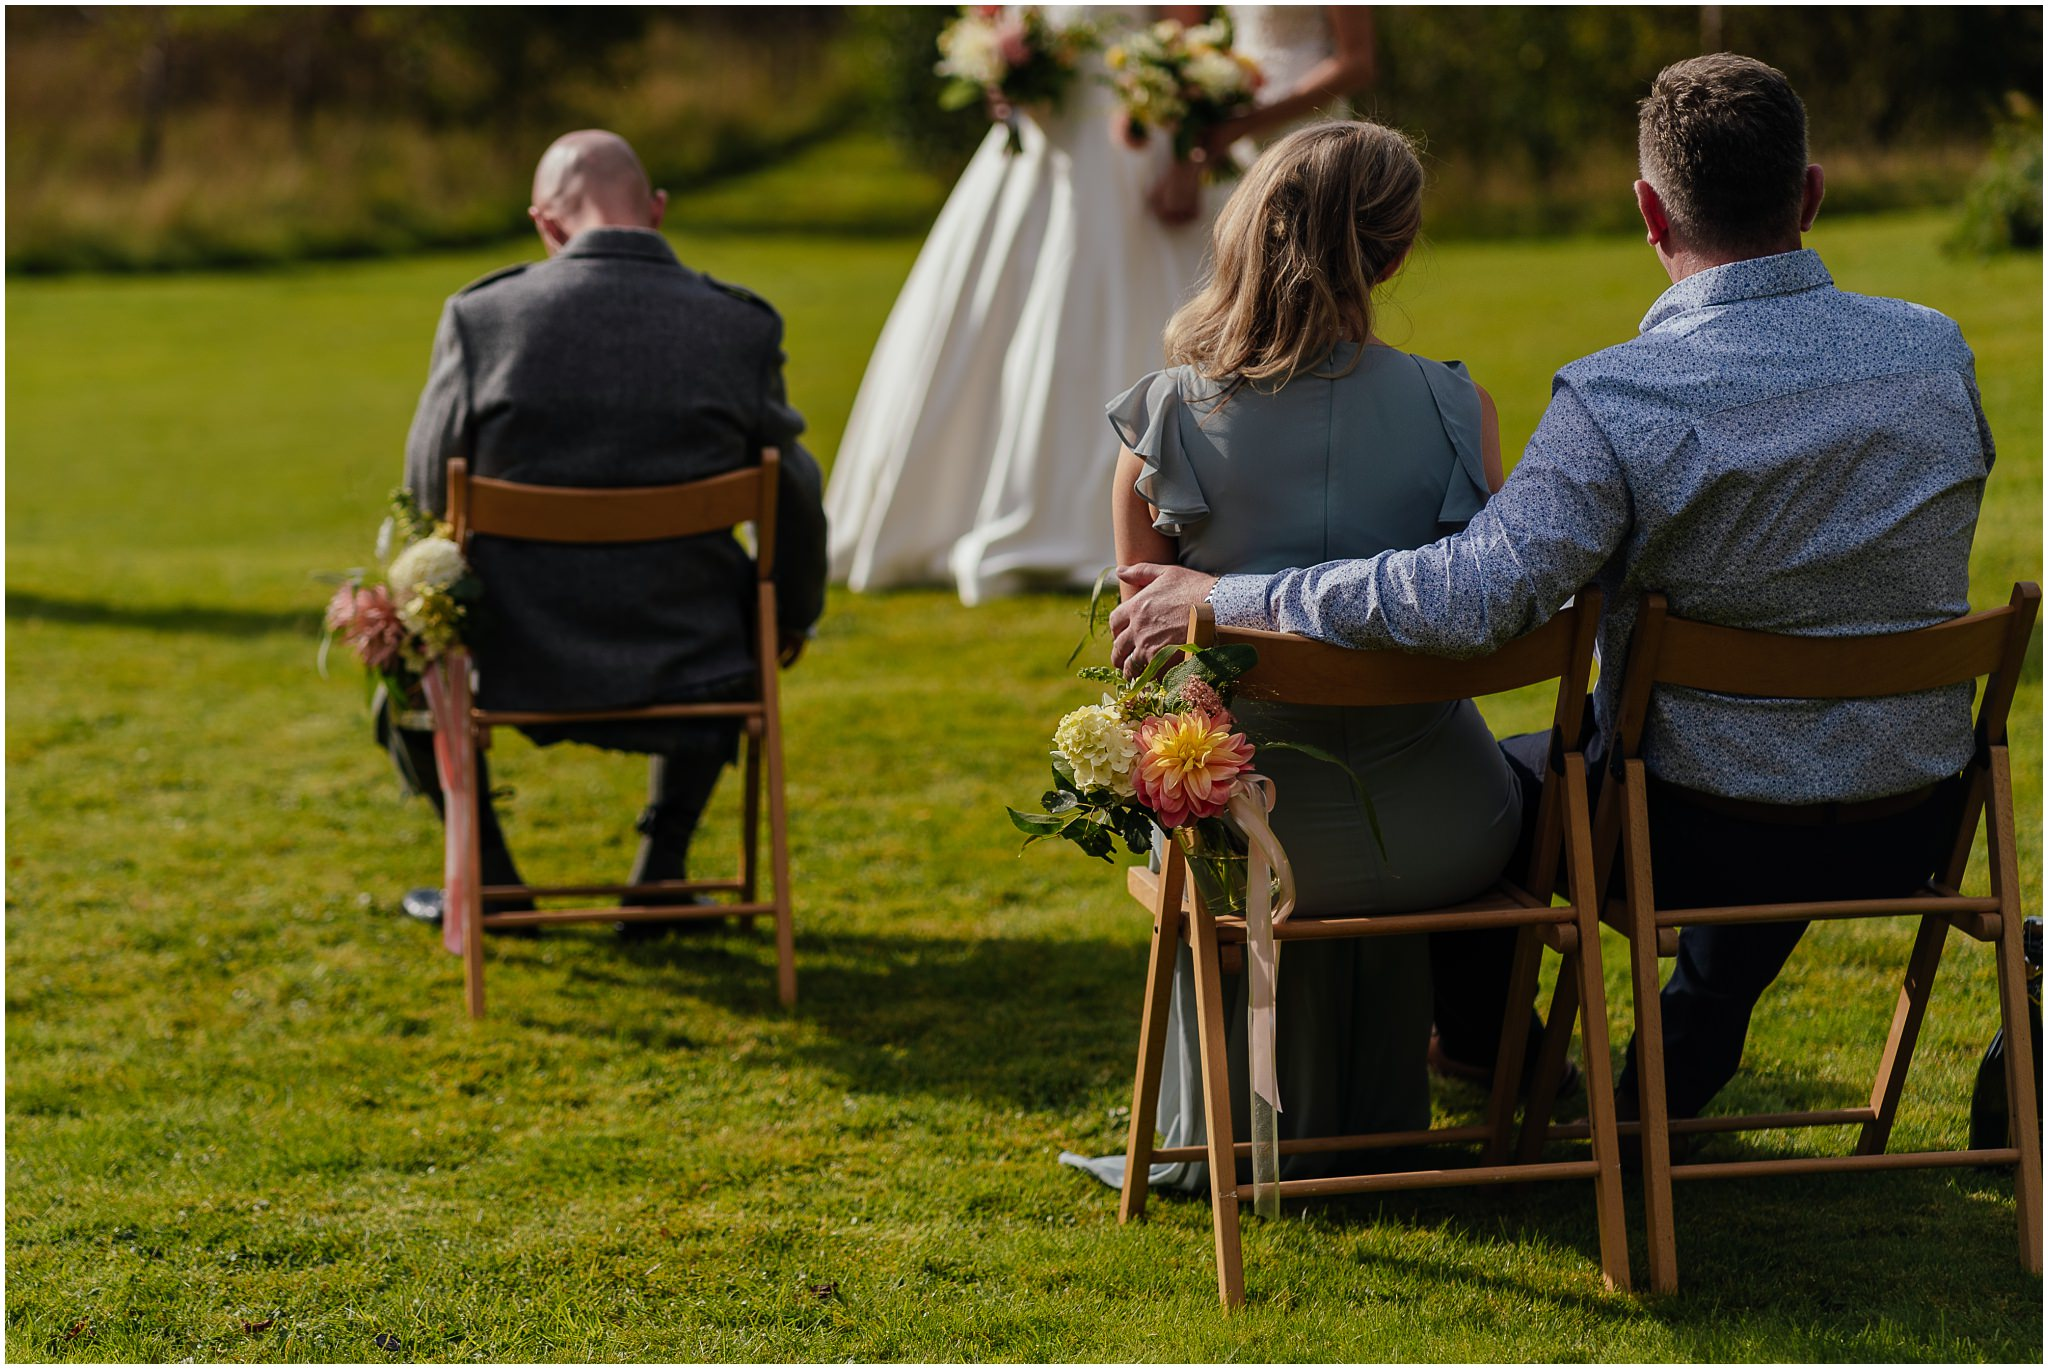 micro wedding ceremony scotland flowers in jars hanging off chairs outdoor ceremony